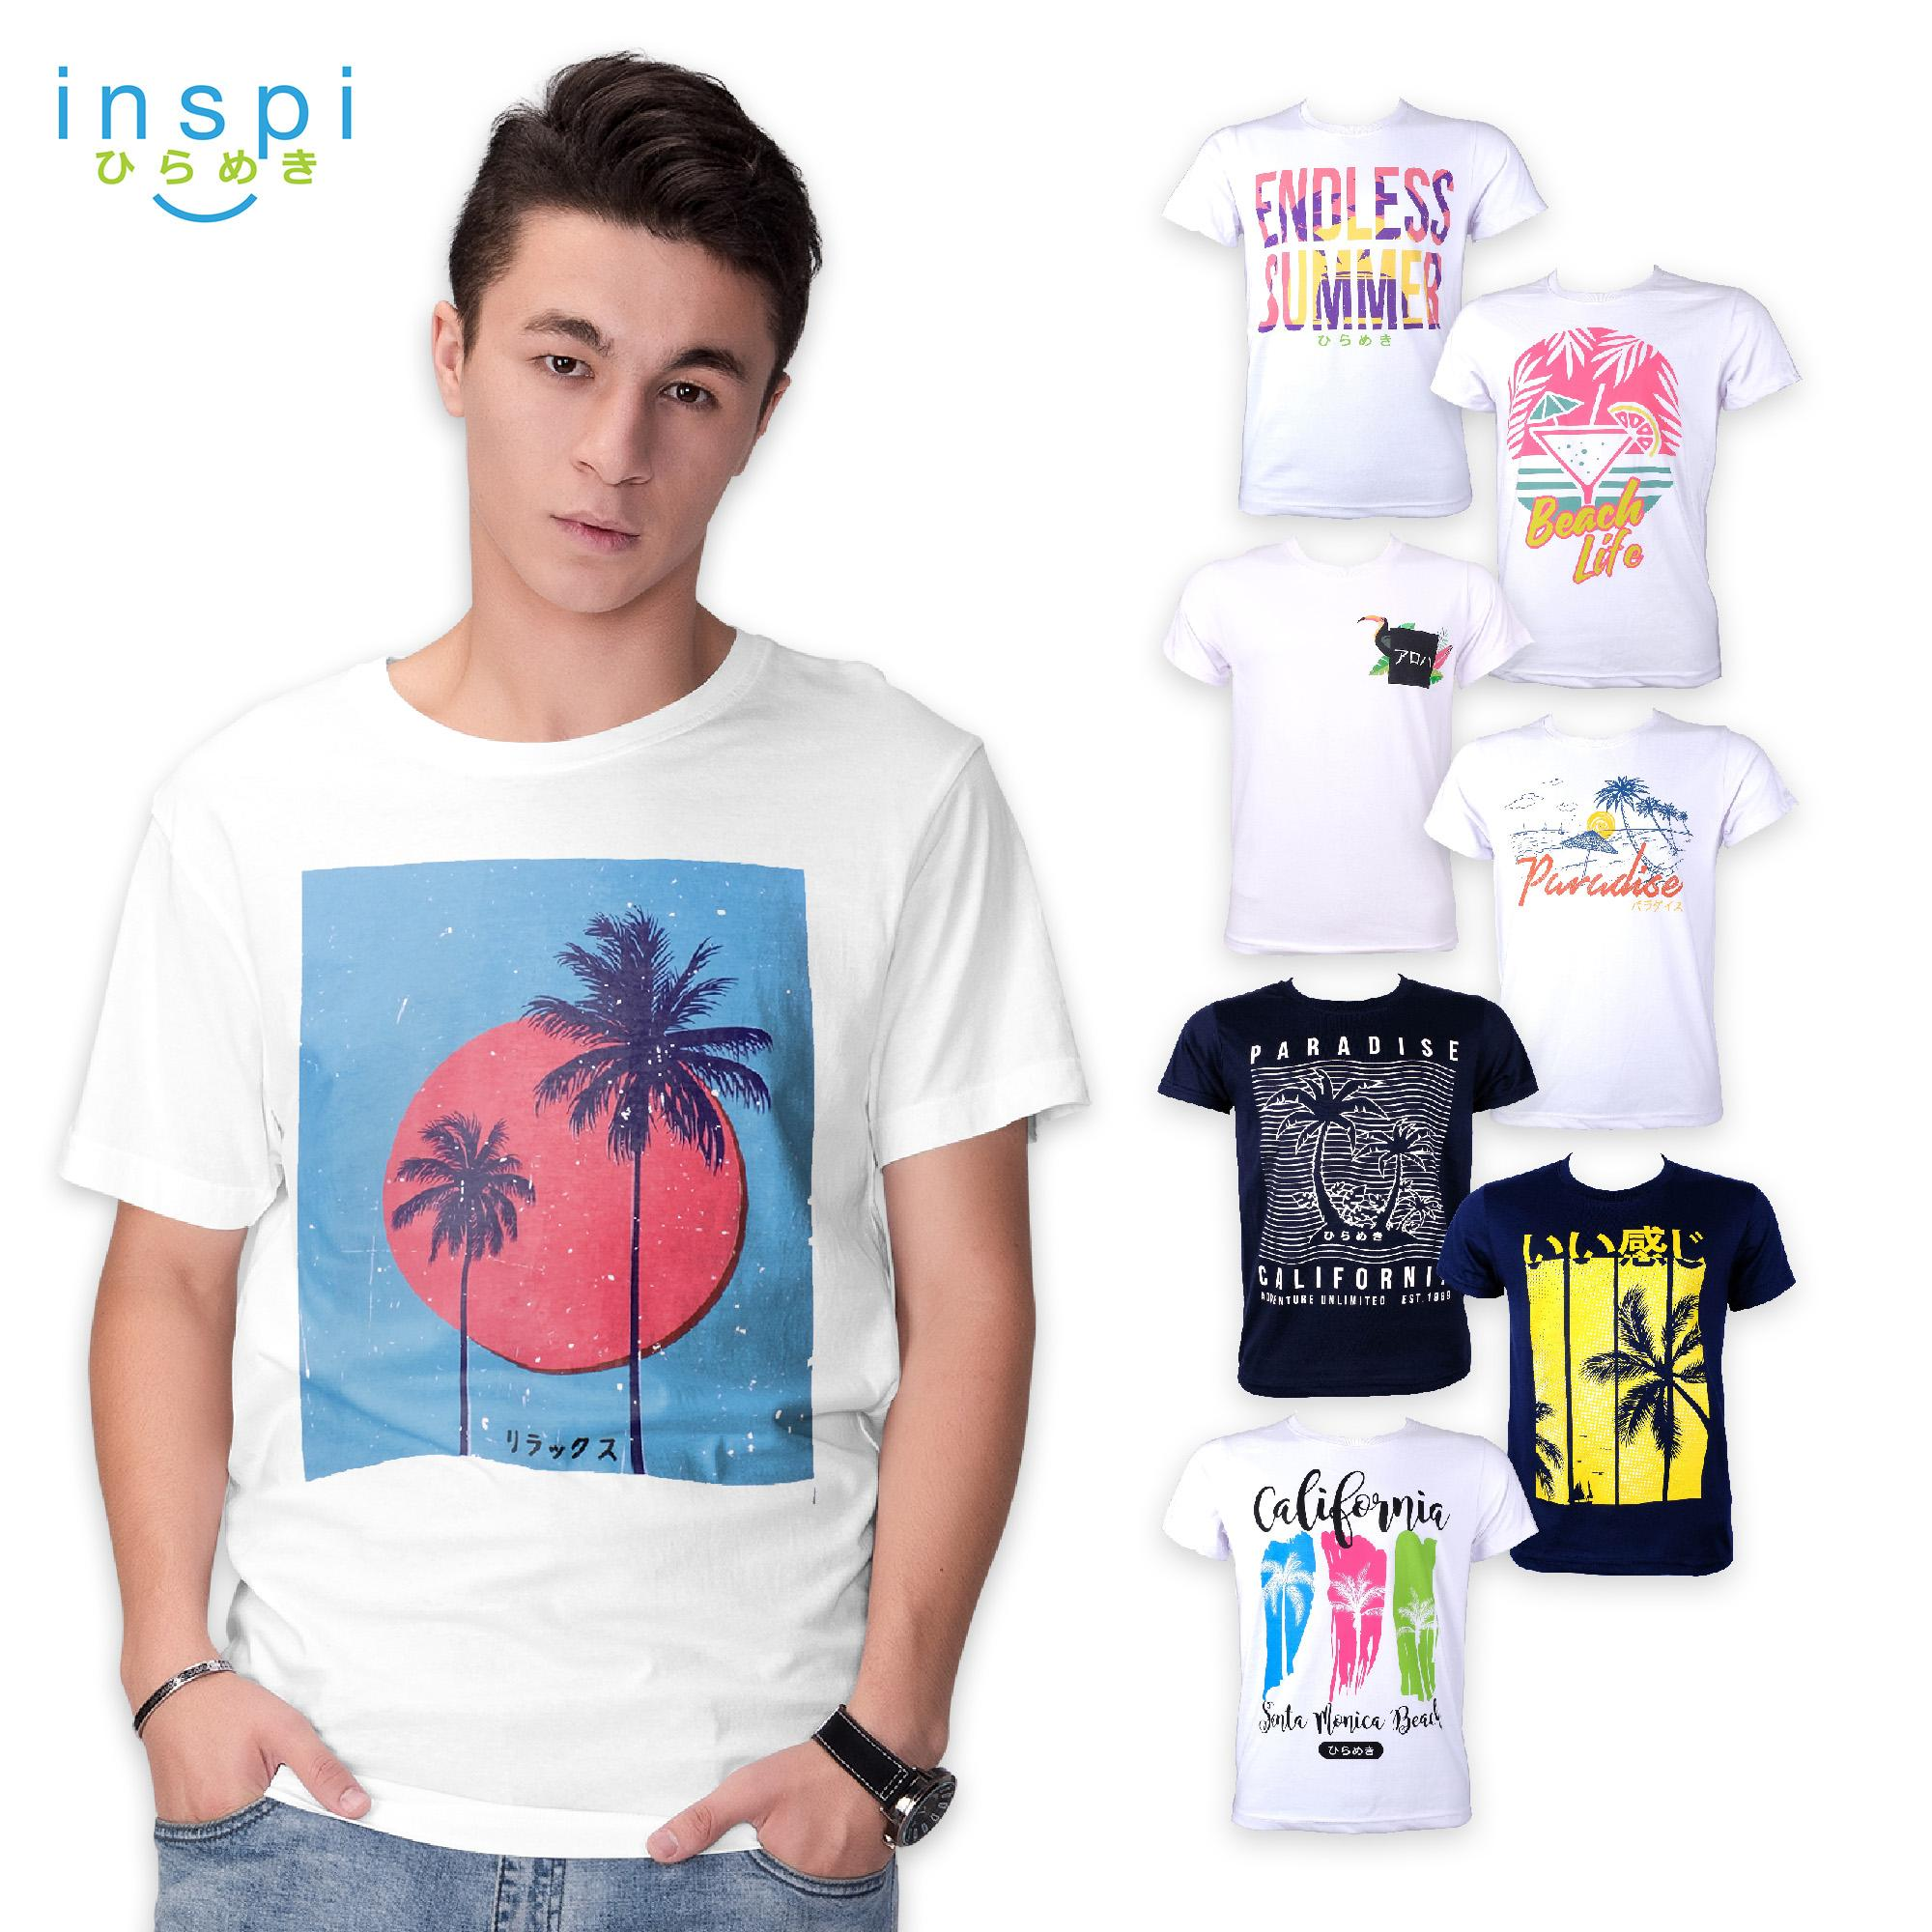 033bd083e INSPI Tees Summer Collection tshirt printed graphic tee Mens t shirt shirts  for men tshirts sale